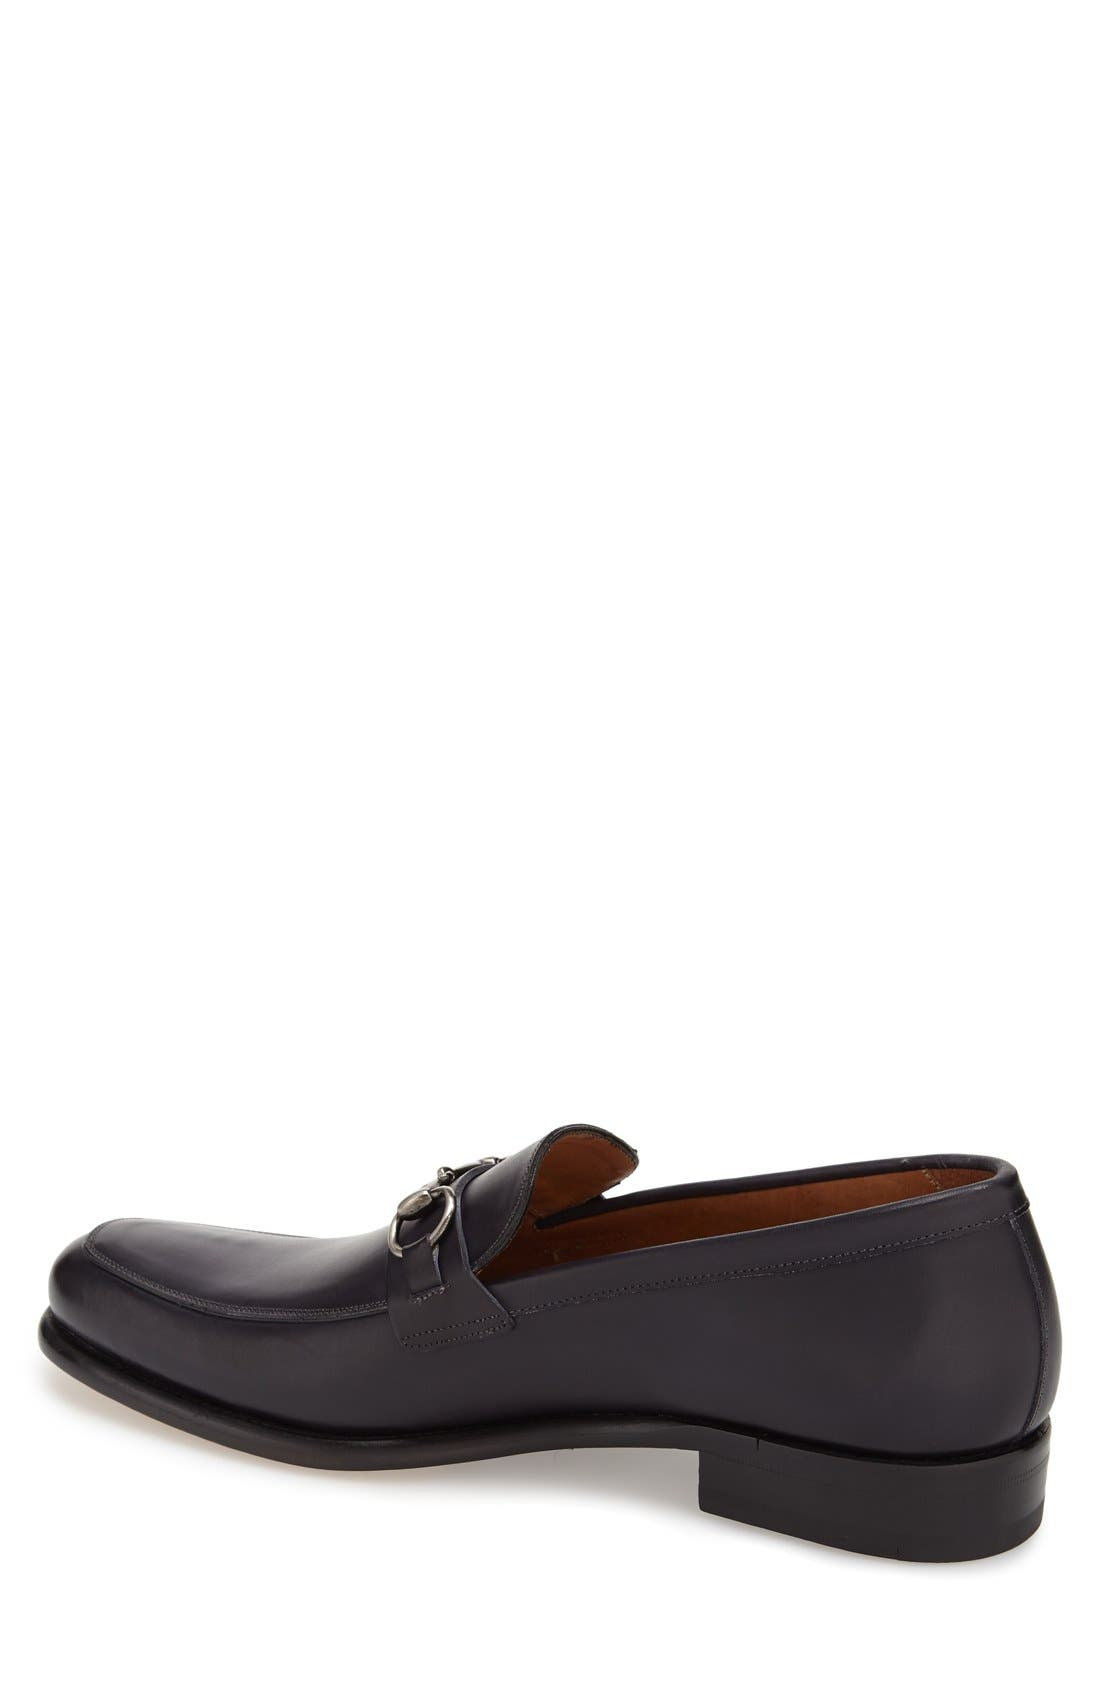 'Worcester' Bit Loafer,                             Alternate thumbnail 2, color,                             Black